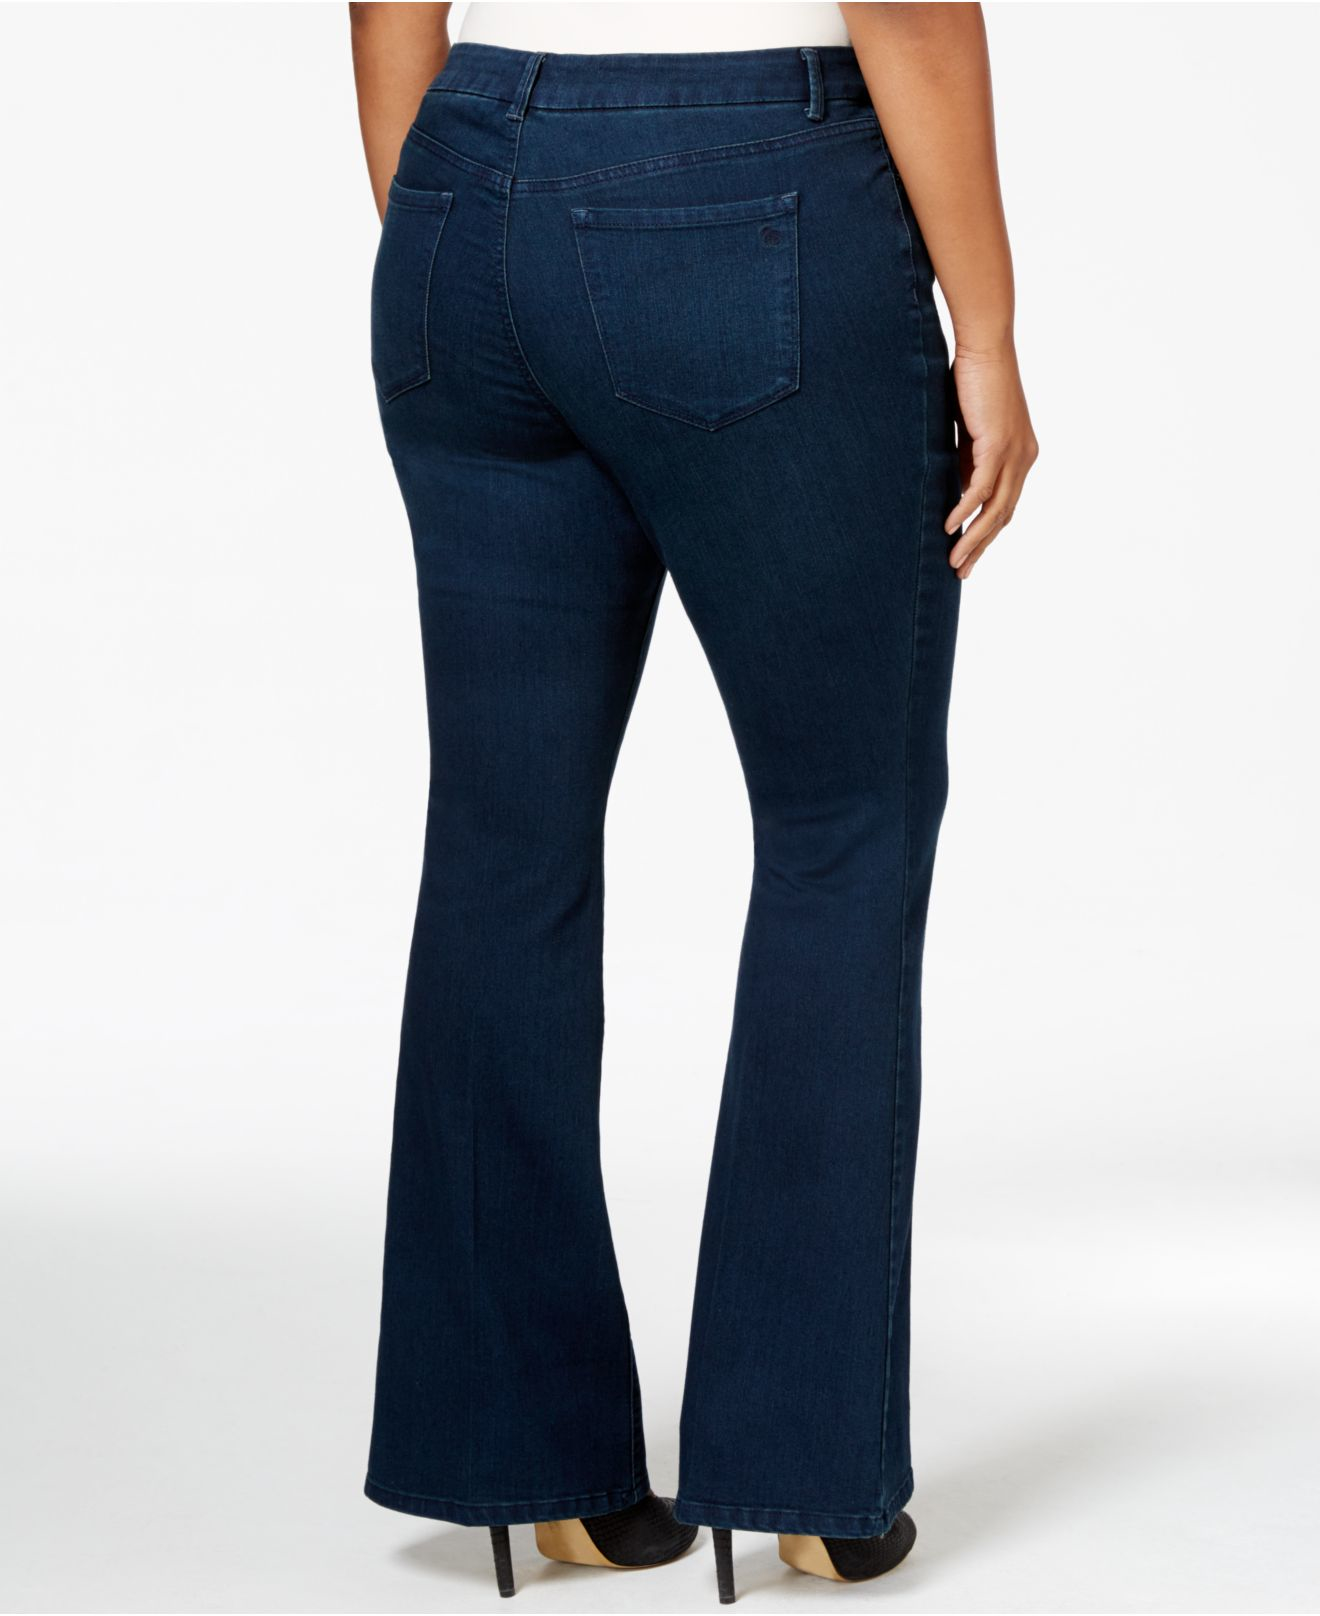 Jessica simpson Plus Size Flare-leg Freesia Wash Jeans in Blue | Lyst